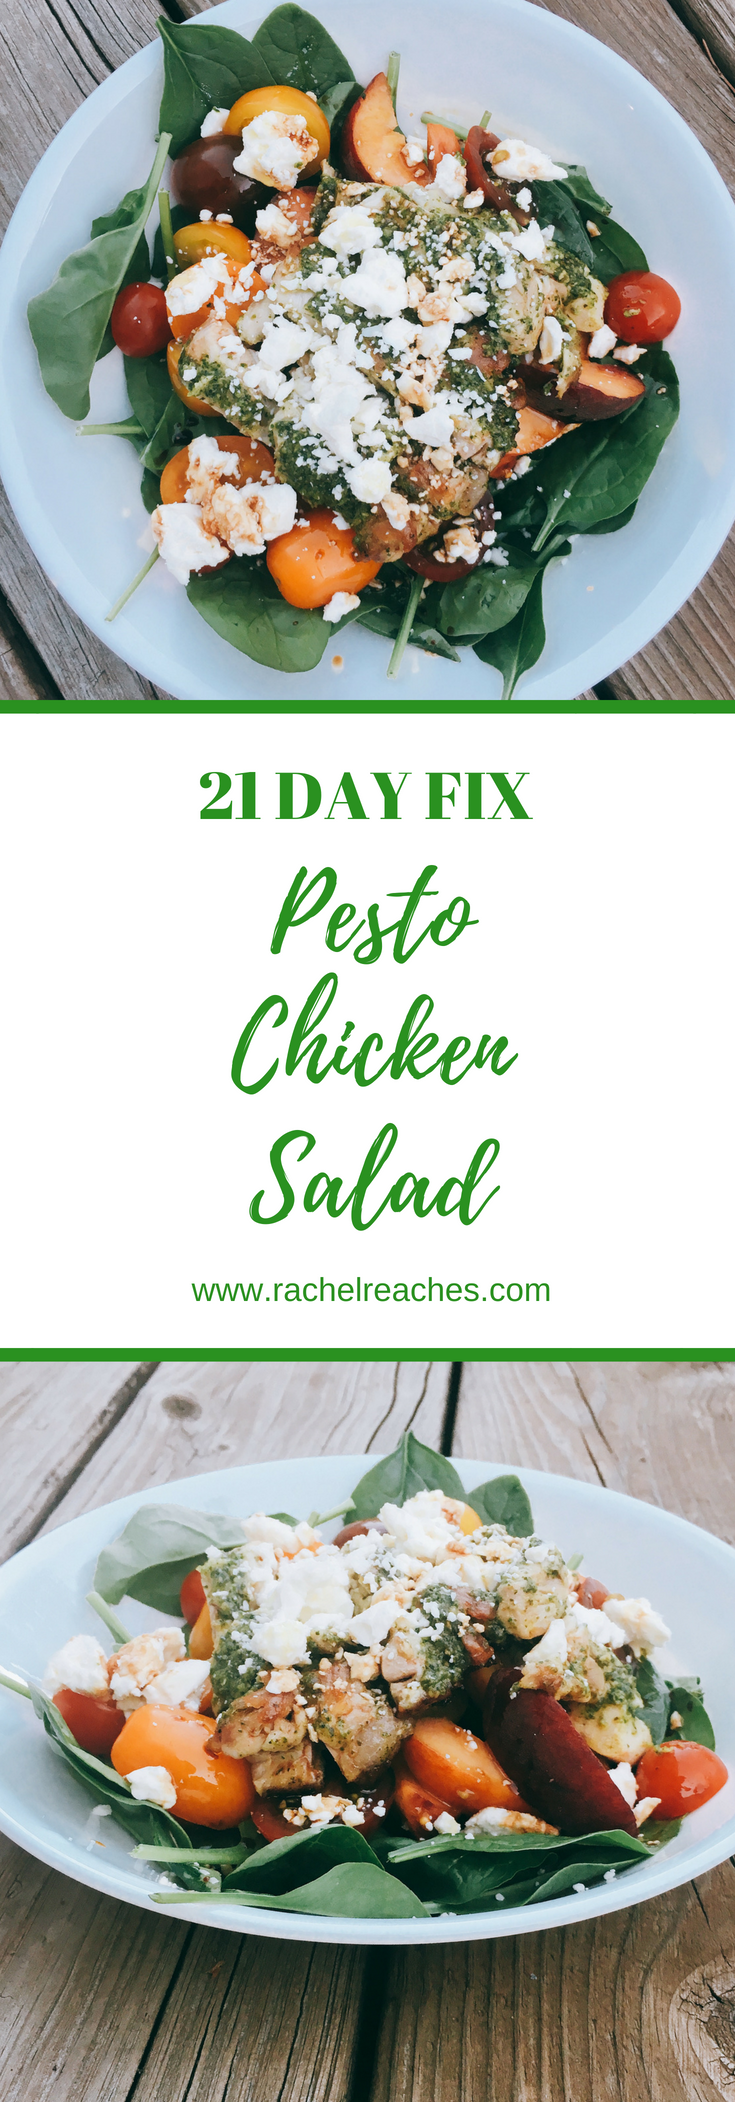 Pesto Chicken Pinterest Pin - 21 Day Fix.png